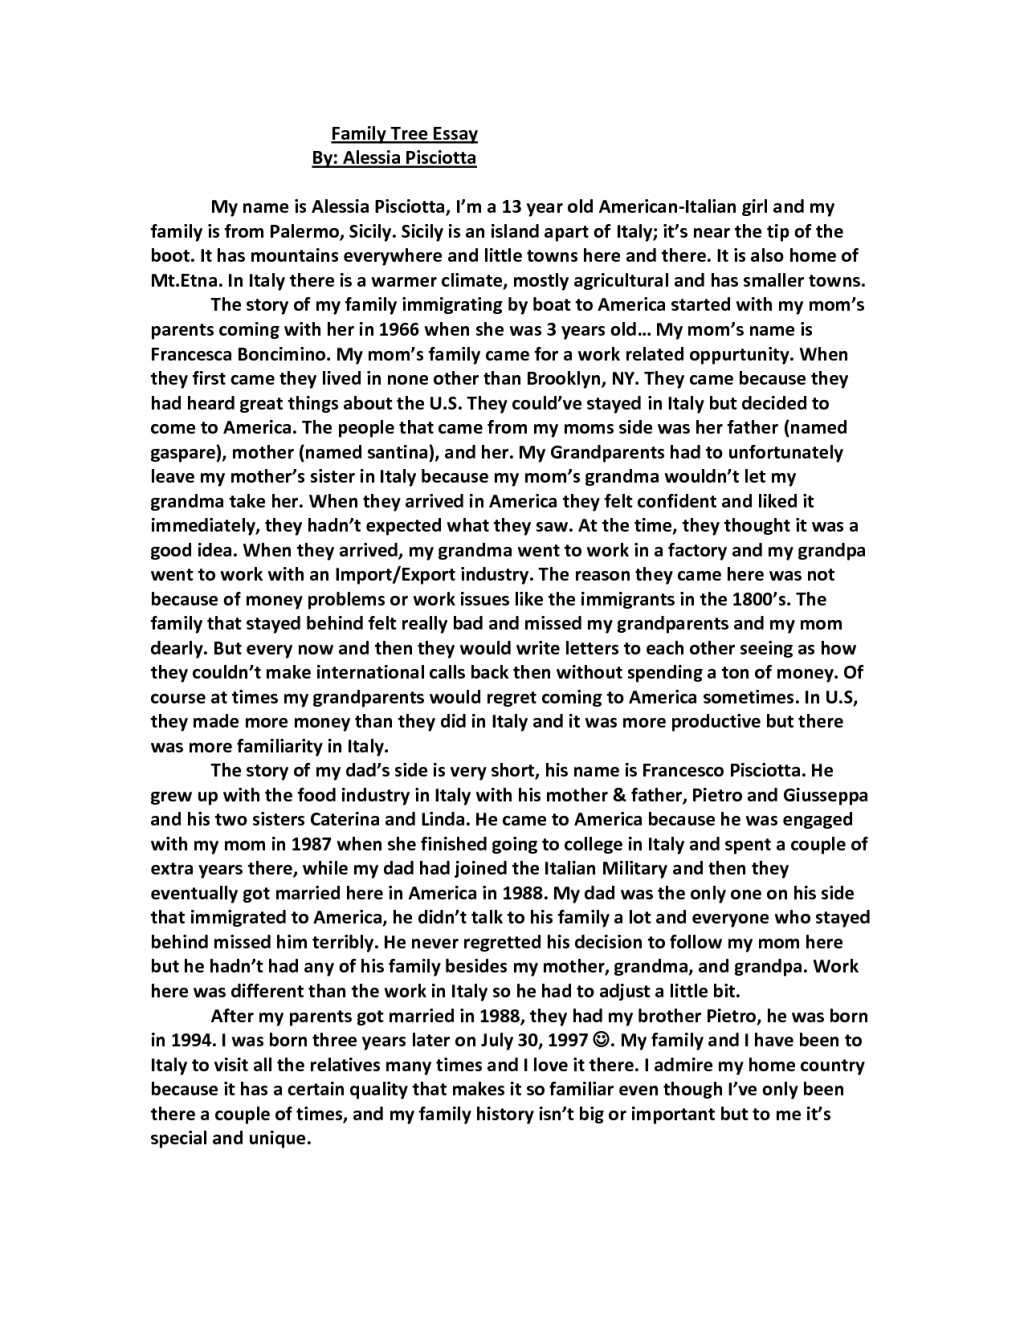 003 Essay Example Po4axrnoni About Shocking Family History Influence On Values First And Foremost Large